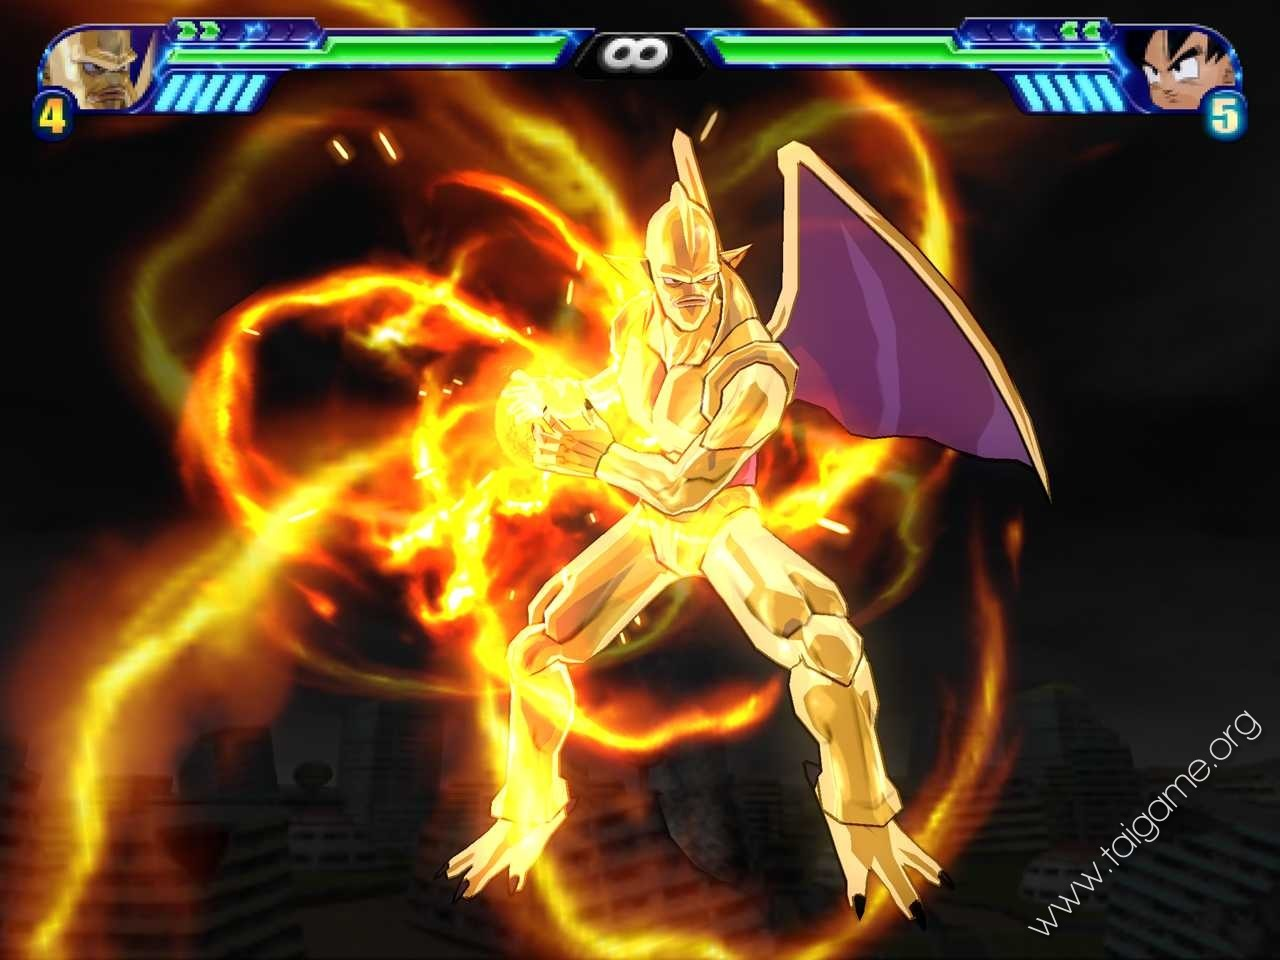 Dragon Ball Z: Budokai Tenkaichi 3 - Download Free Full